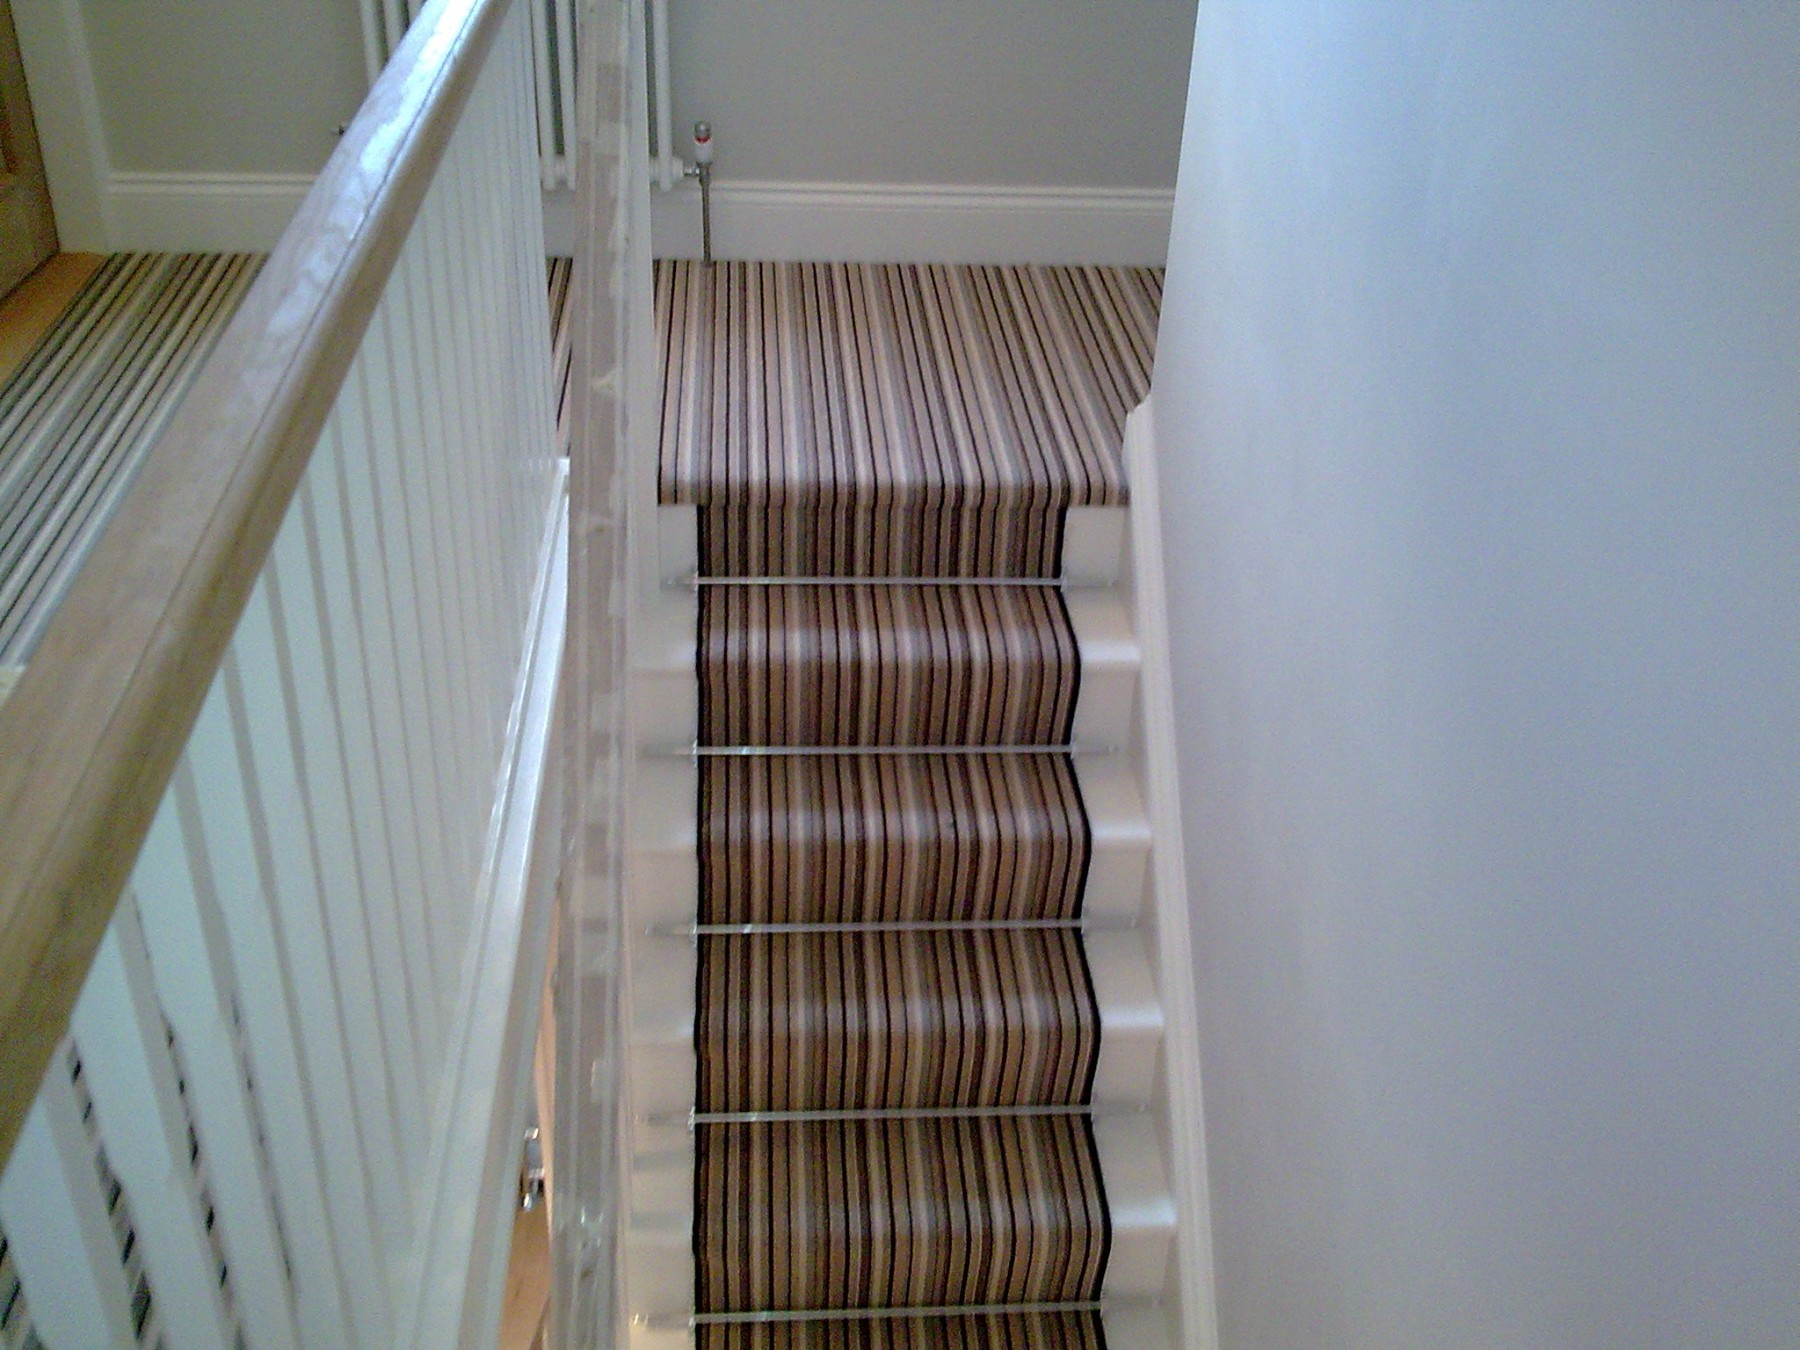 Striped carpet in a landing and up a staircase with grey walls